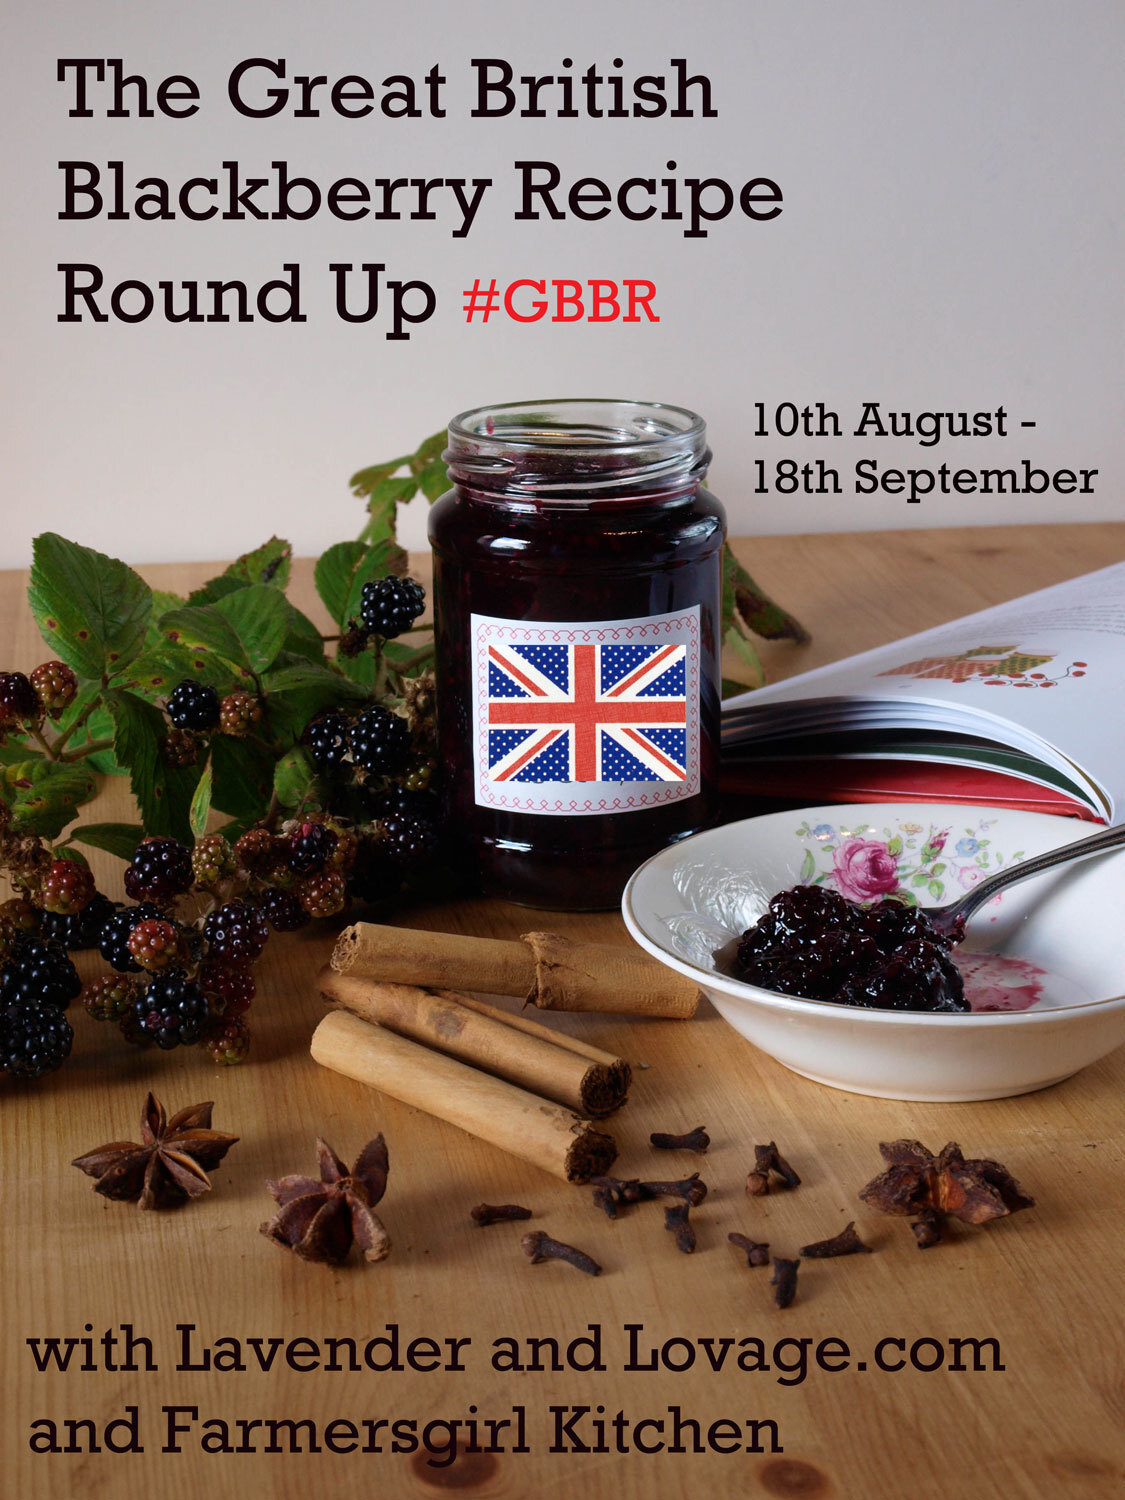 A Feast of Blackberries - The Great British Blackberry Recipe Round Up